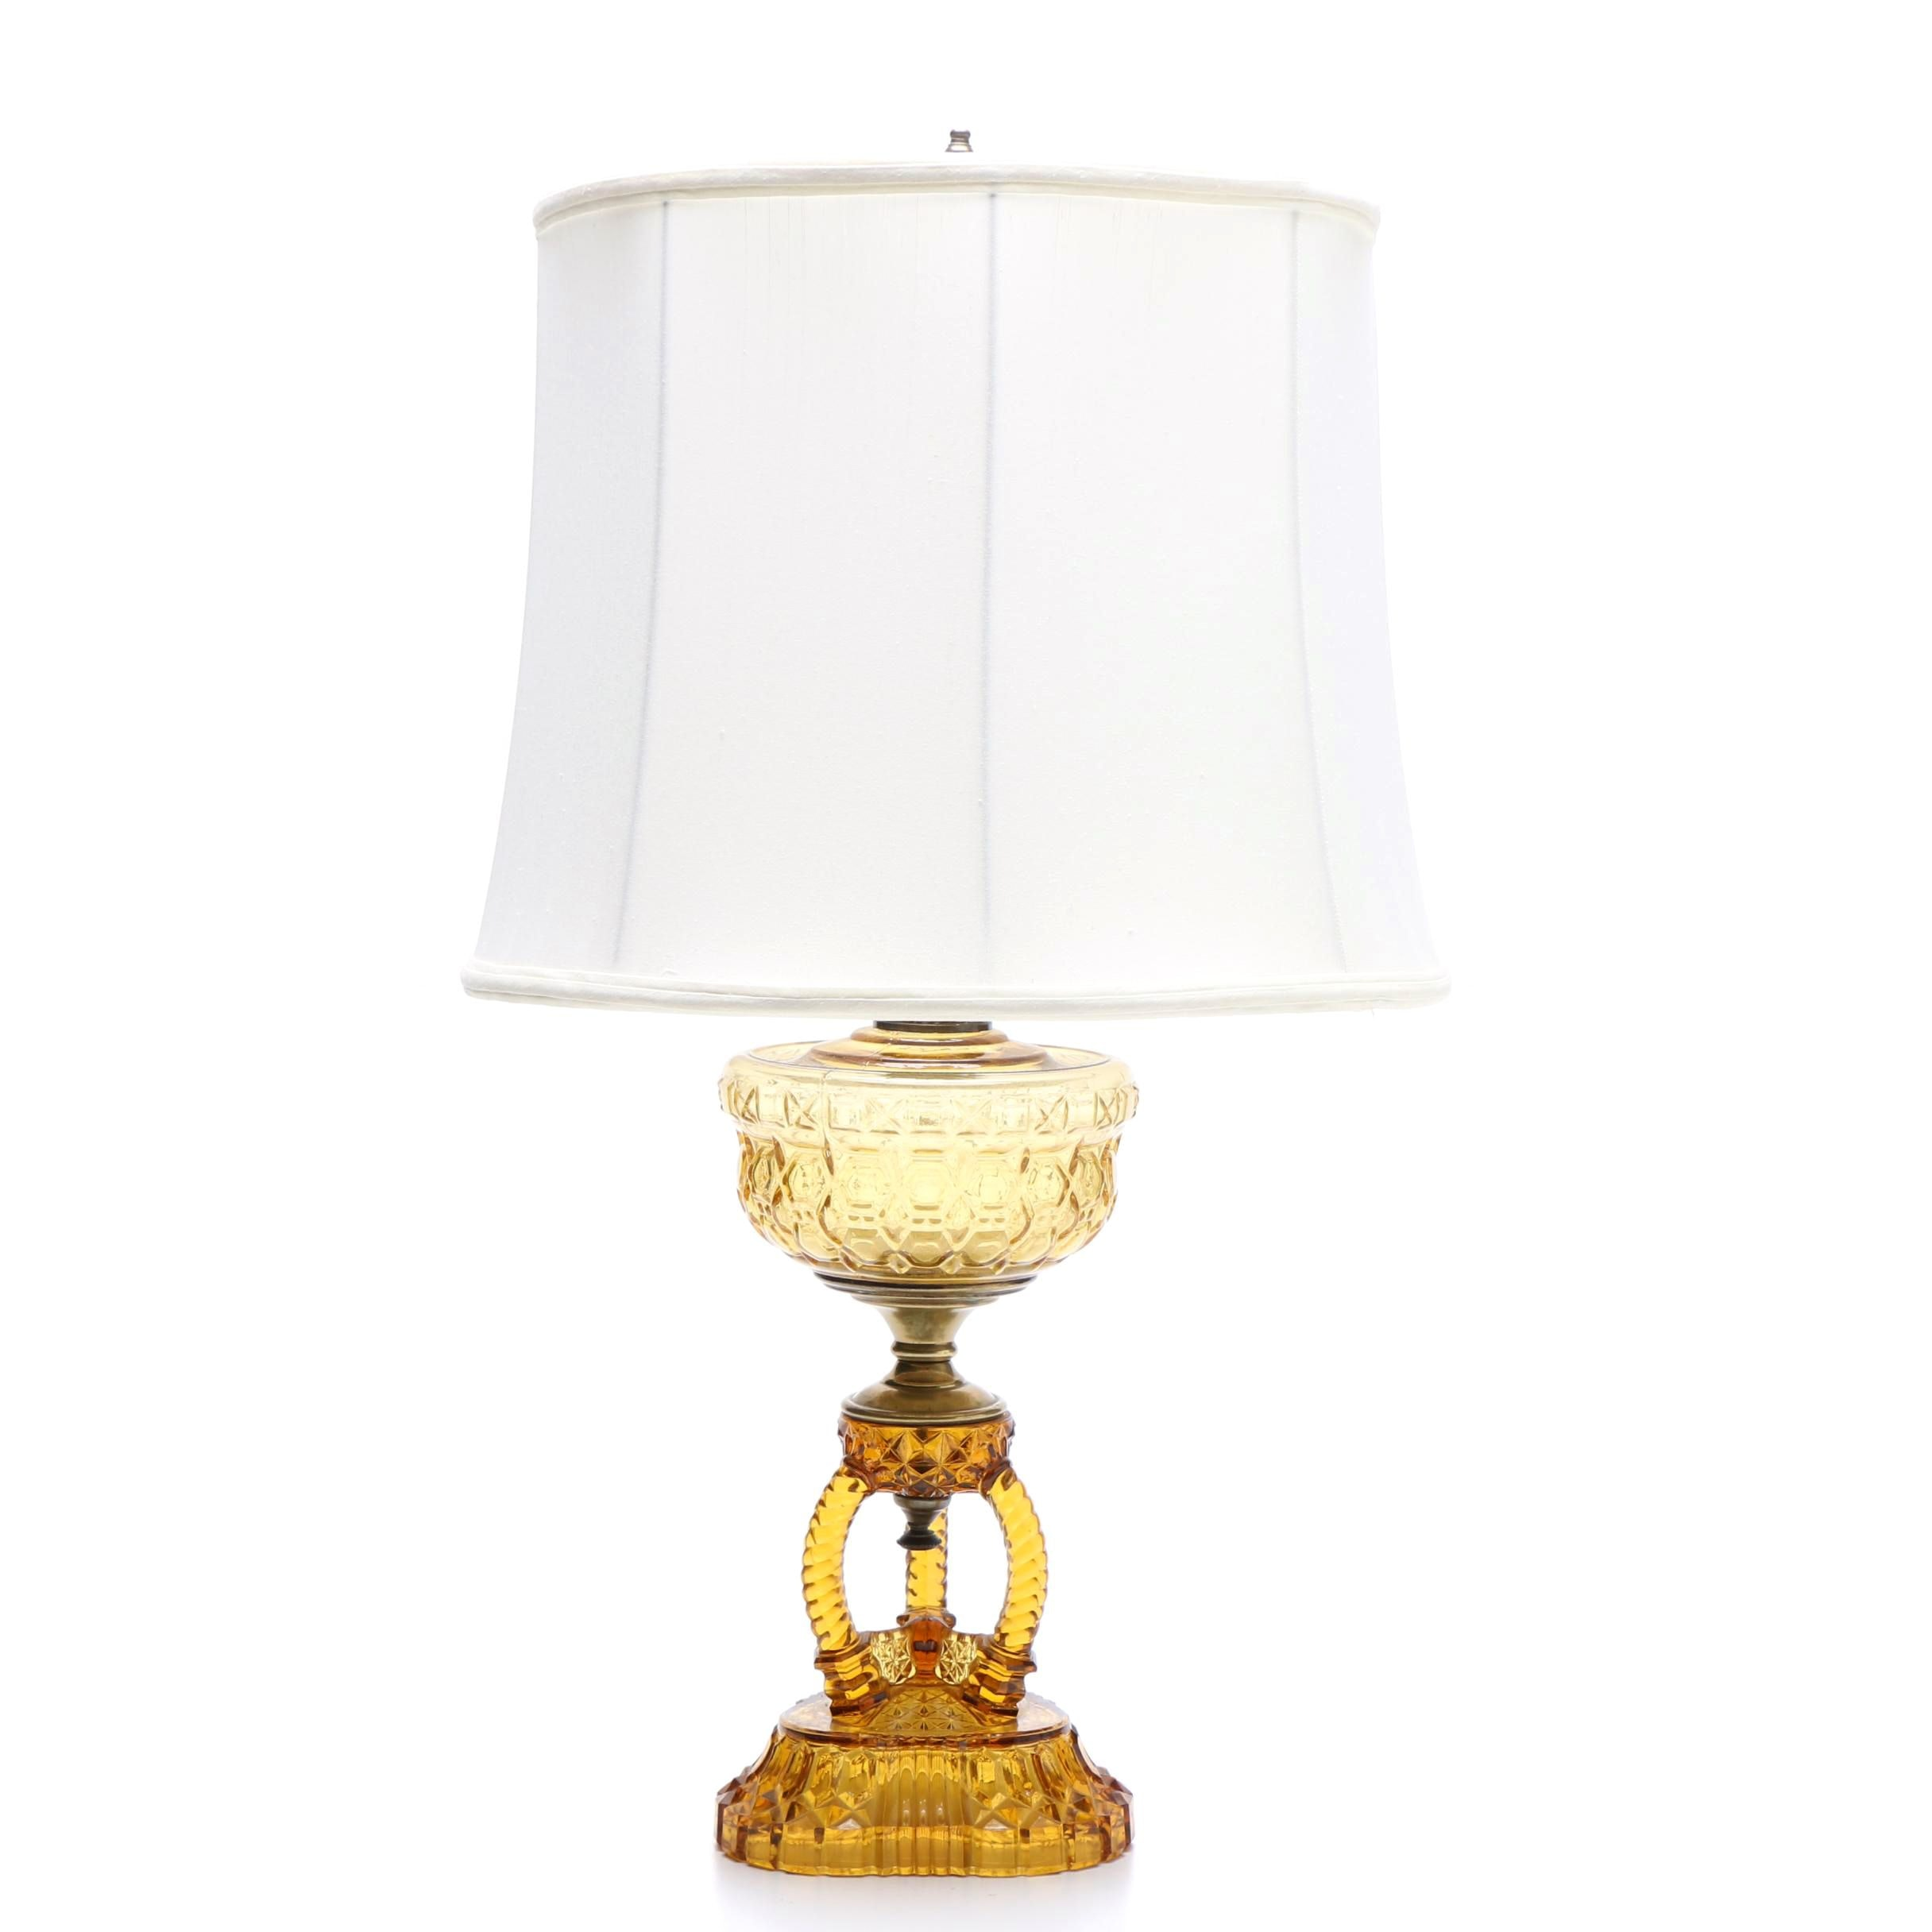 Converted Amber Glass Oil Lamp with Lamp Shade